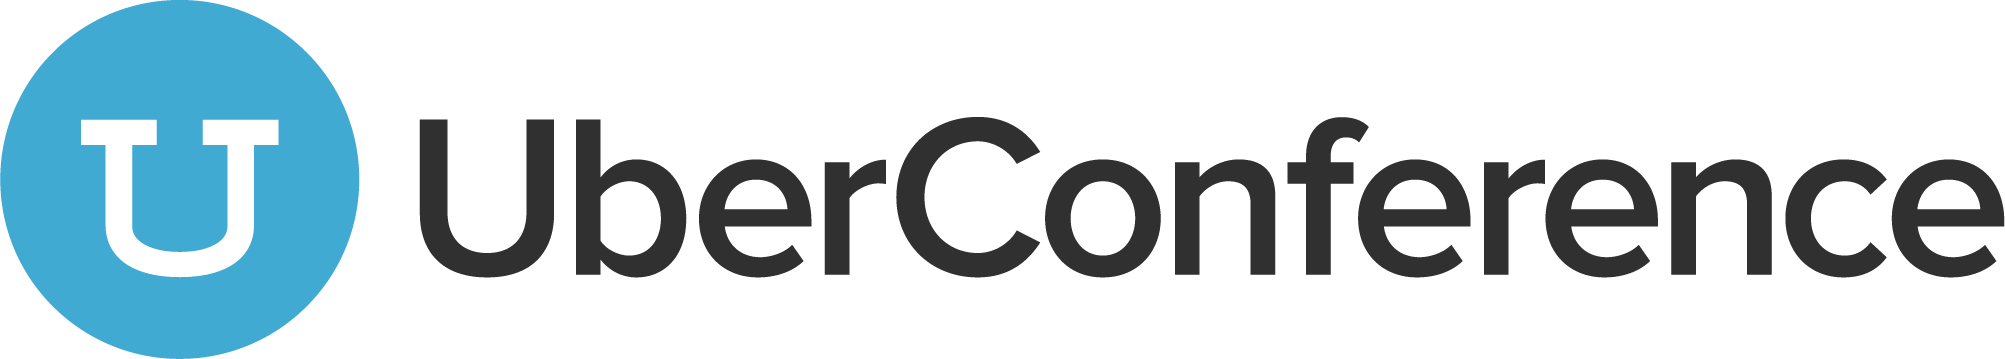 uberconference-logo-hires.png